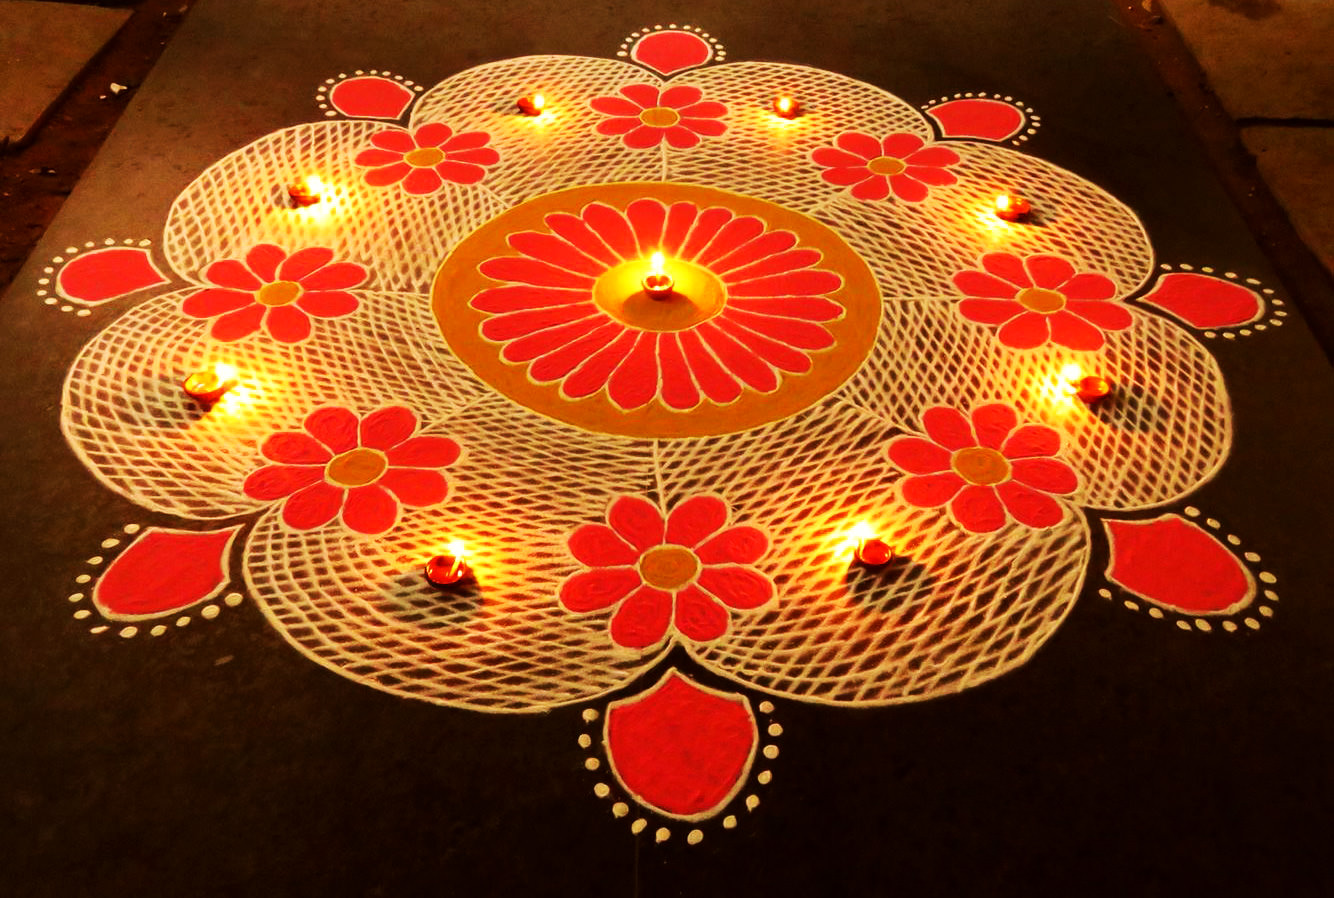 Flower Rangoli Design for Diwali with Diya